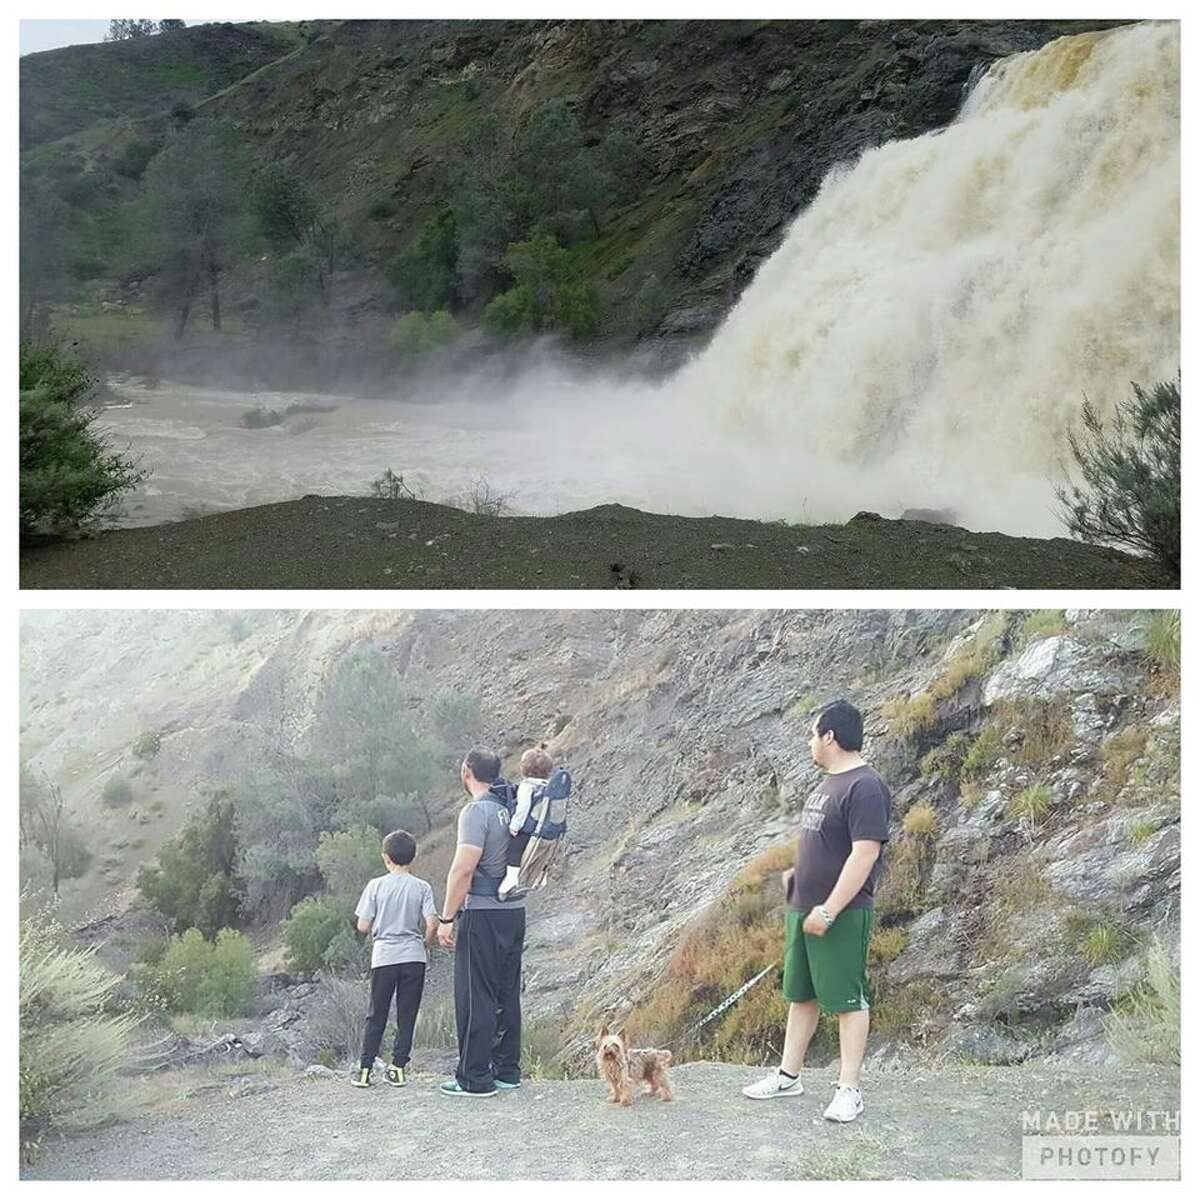 Anderson Dam in Morgan Hill, Calif. Top:February 2017 Bottom:May 2016